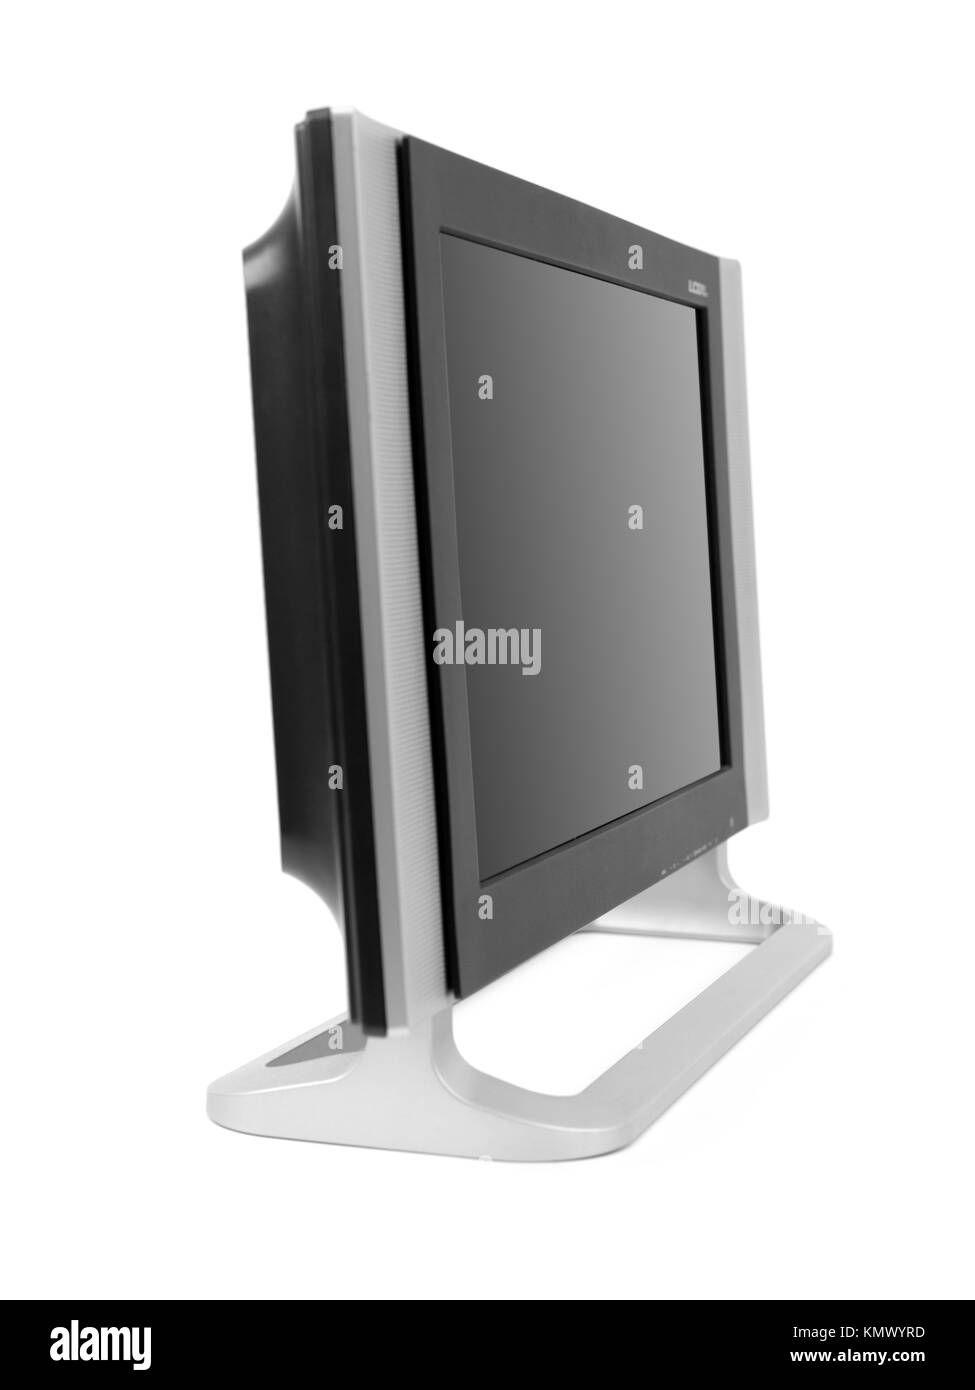 Liquid Crystal Display Black And White Stock Photos Images Alamy Lcd A Tv Monitor Isolated Against Background Image